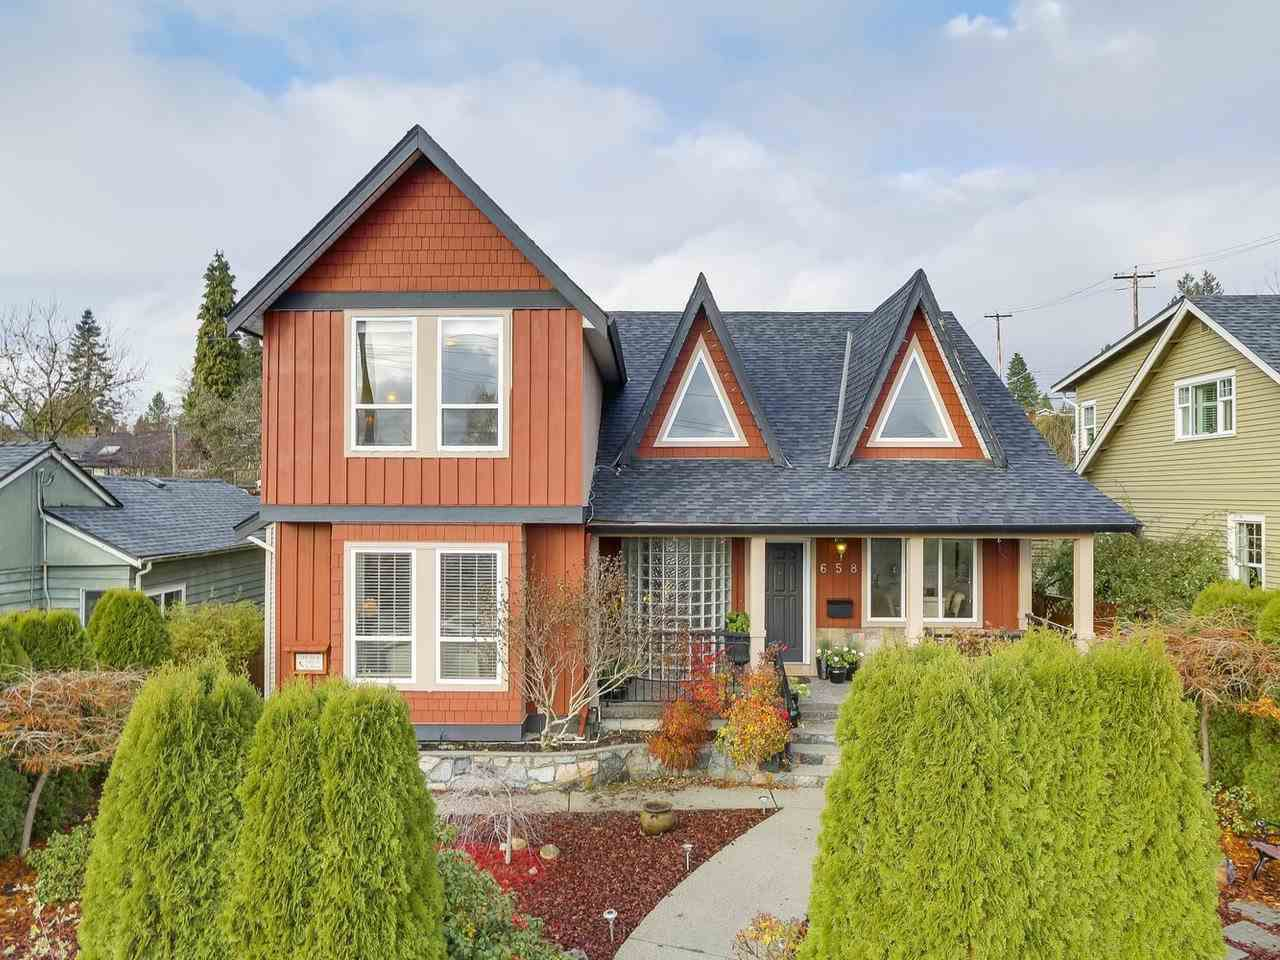 Main Photo: 658 E 4TH STREET in North Vancouver: Queensbury House for sale : MLS®# R2222993